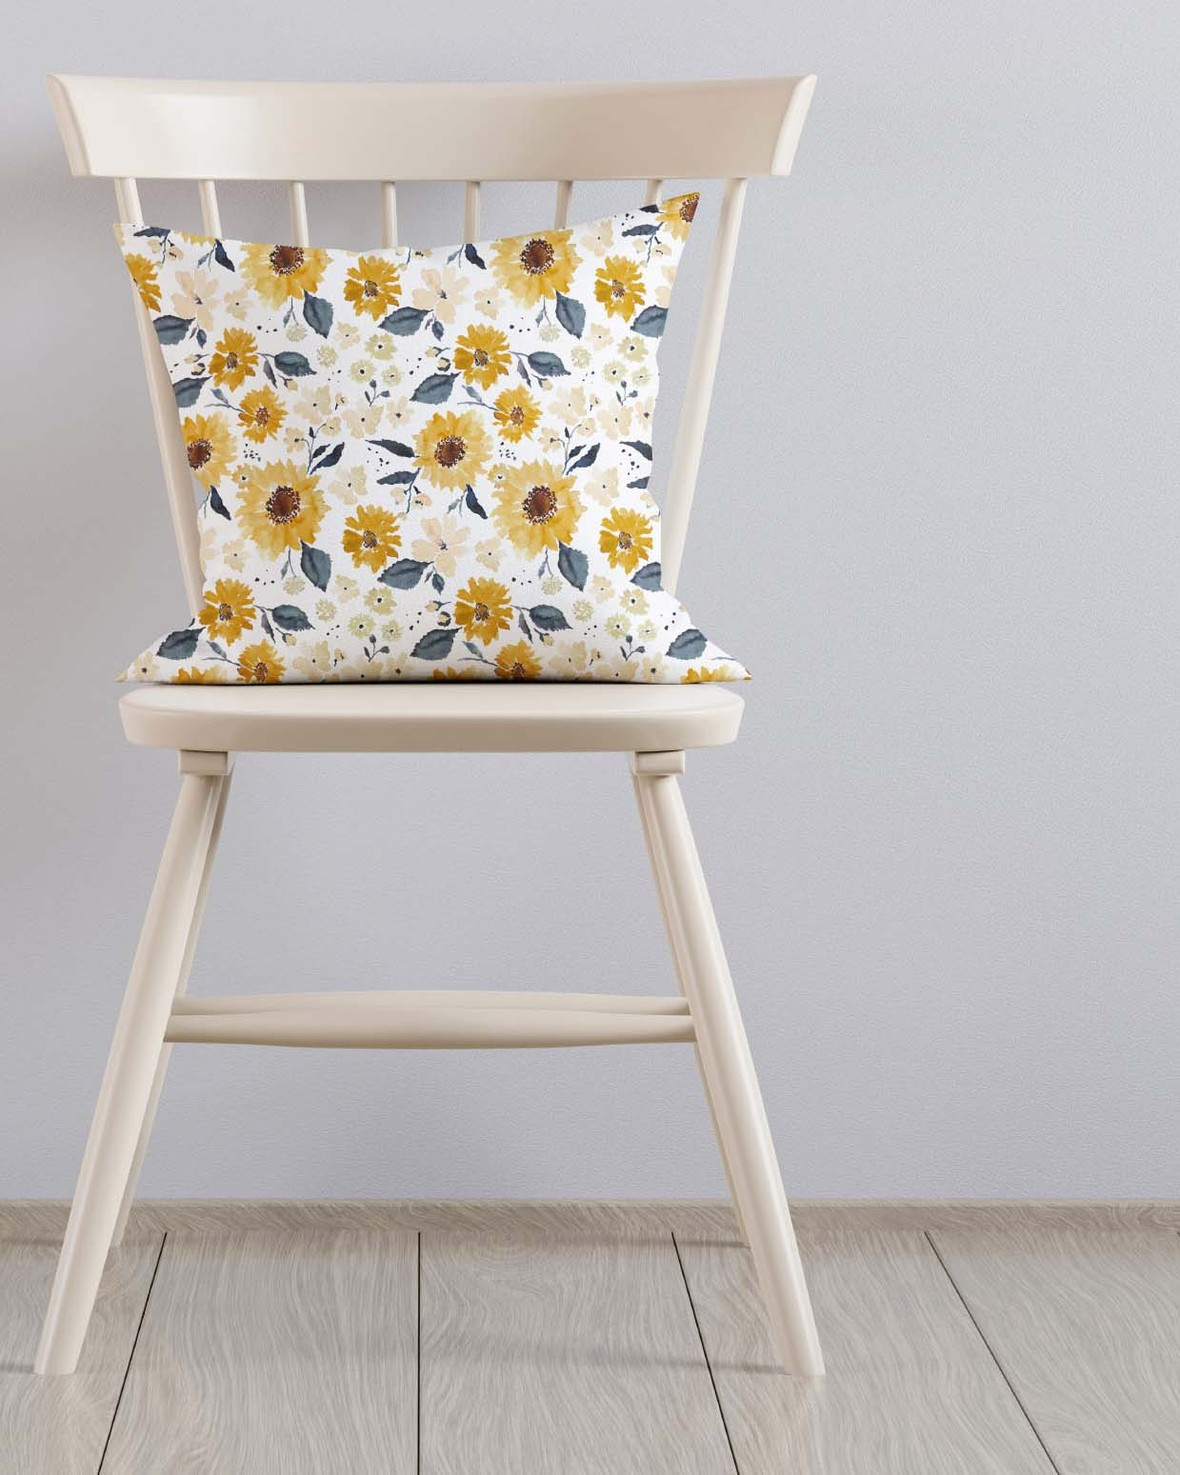 Pillow on Ivory Chair large sunflower girl